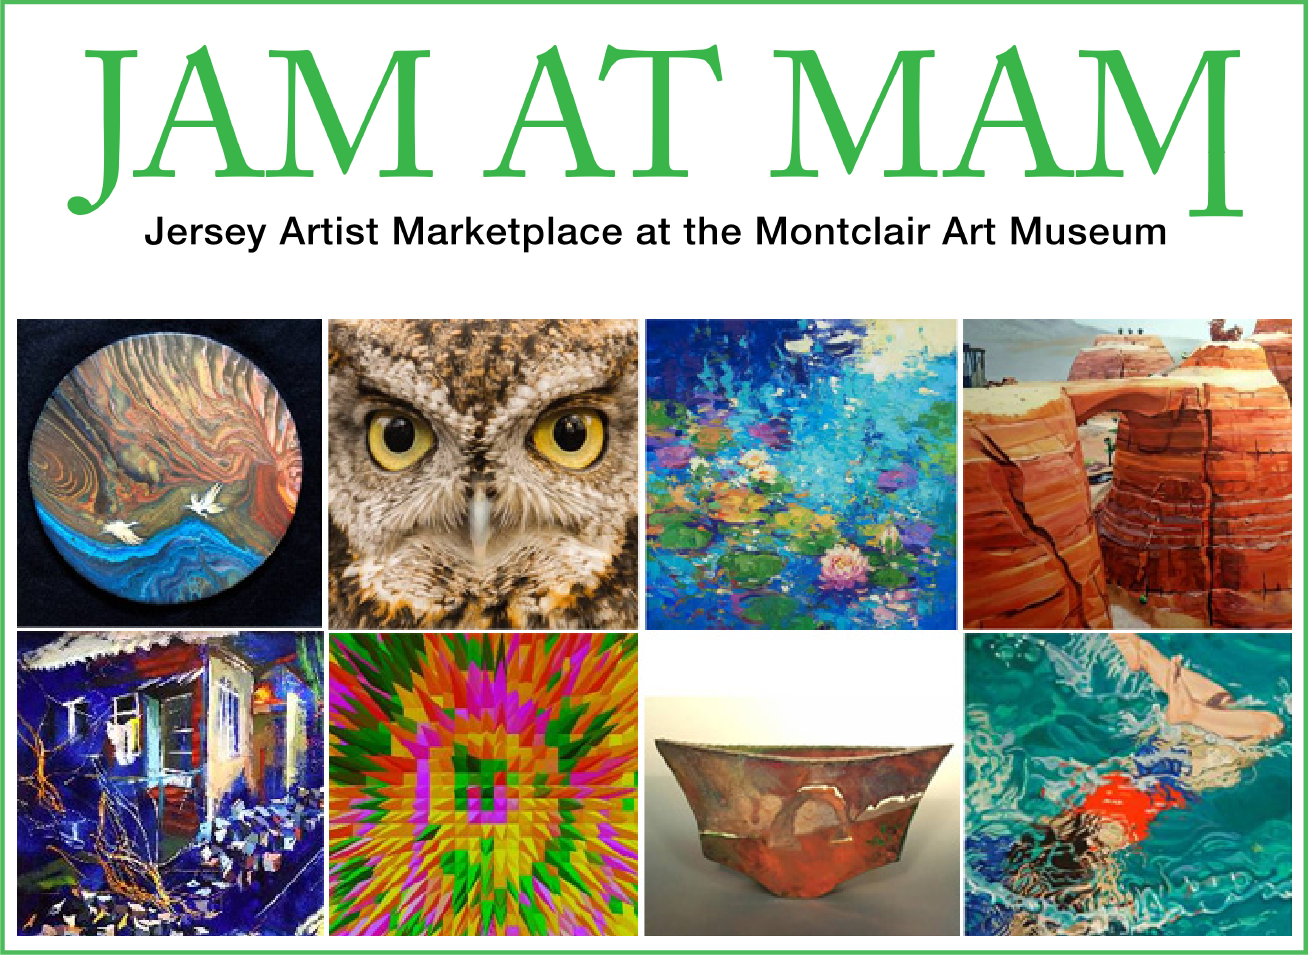 JAM at MAM logotype above a group of artworks for sale